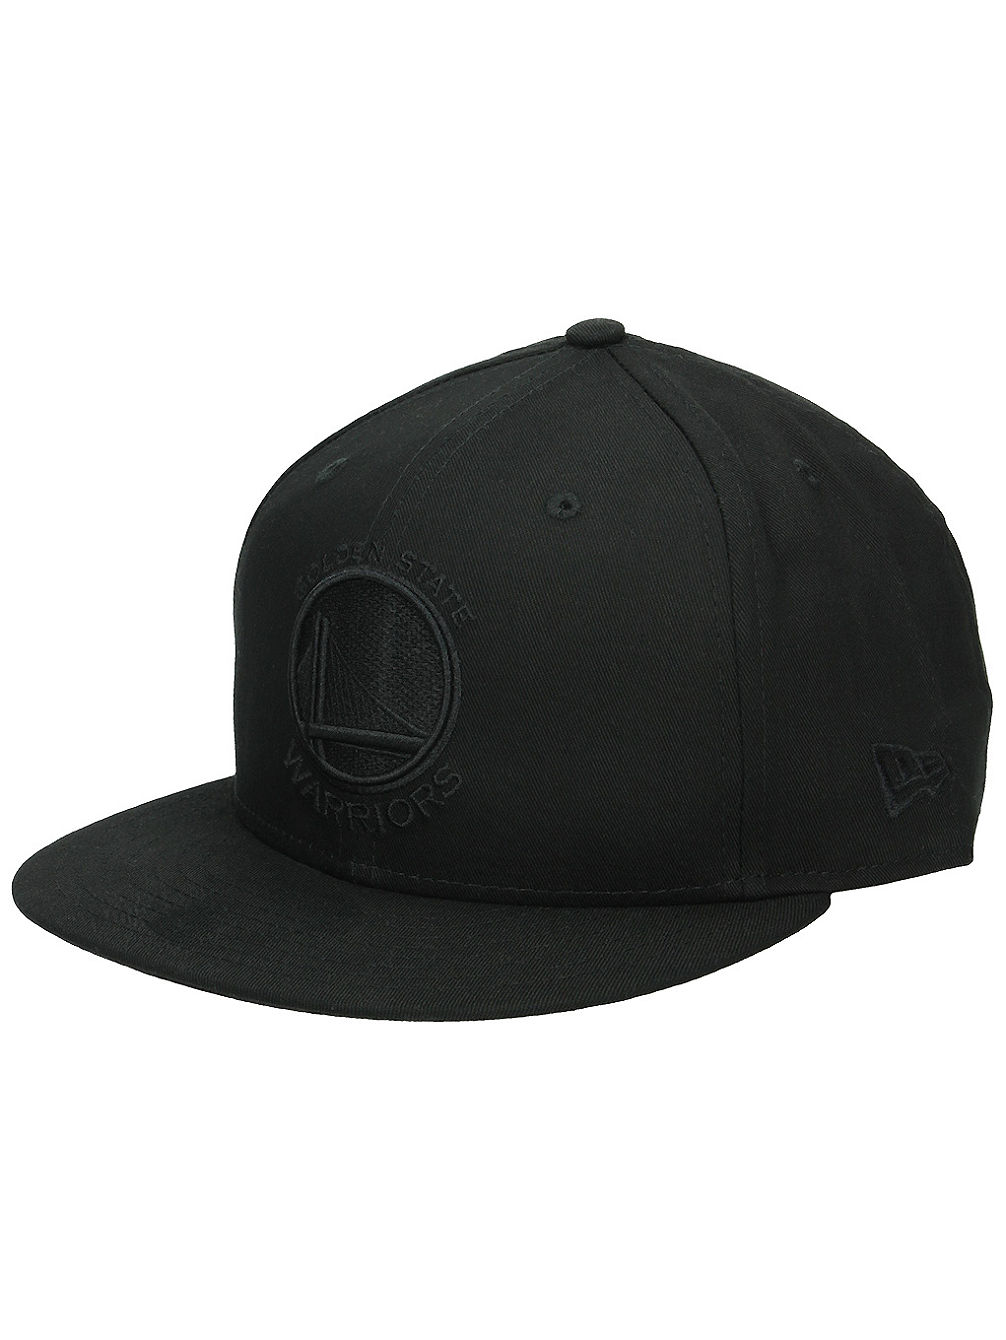 NBA Bob 9Fifty Cap